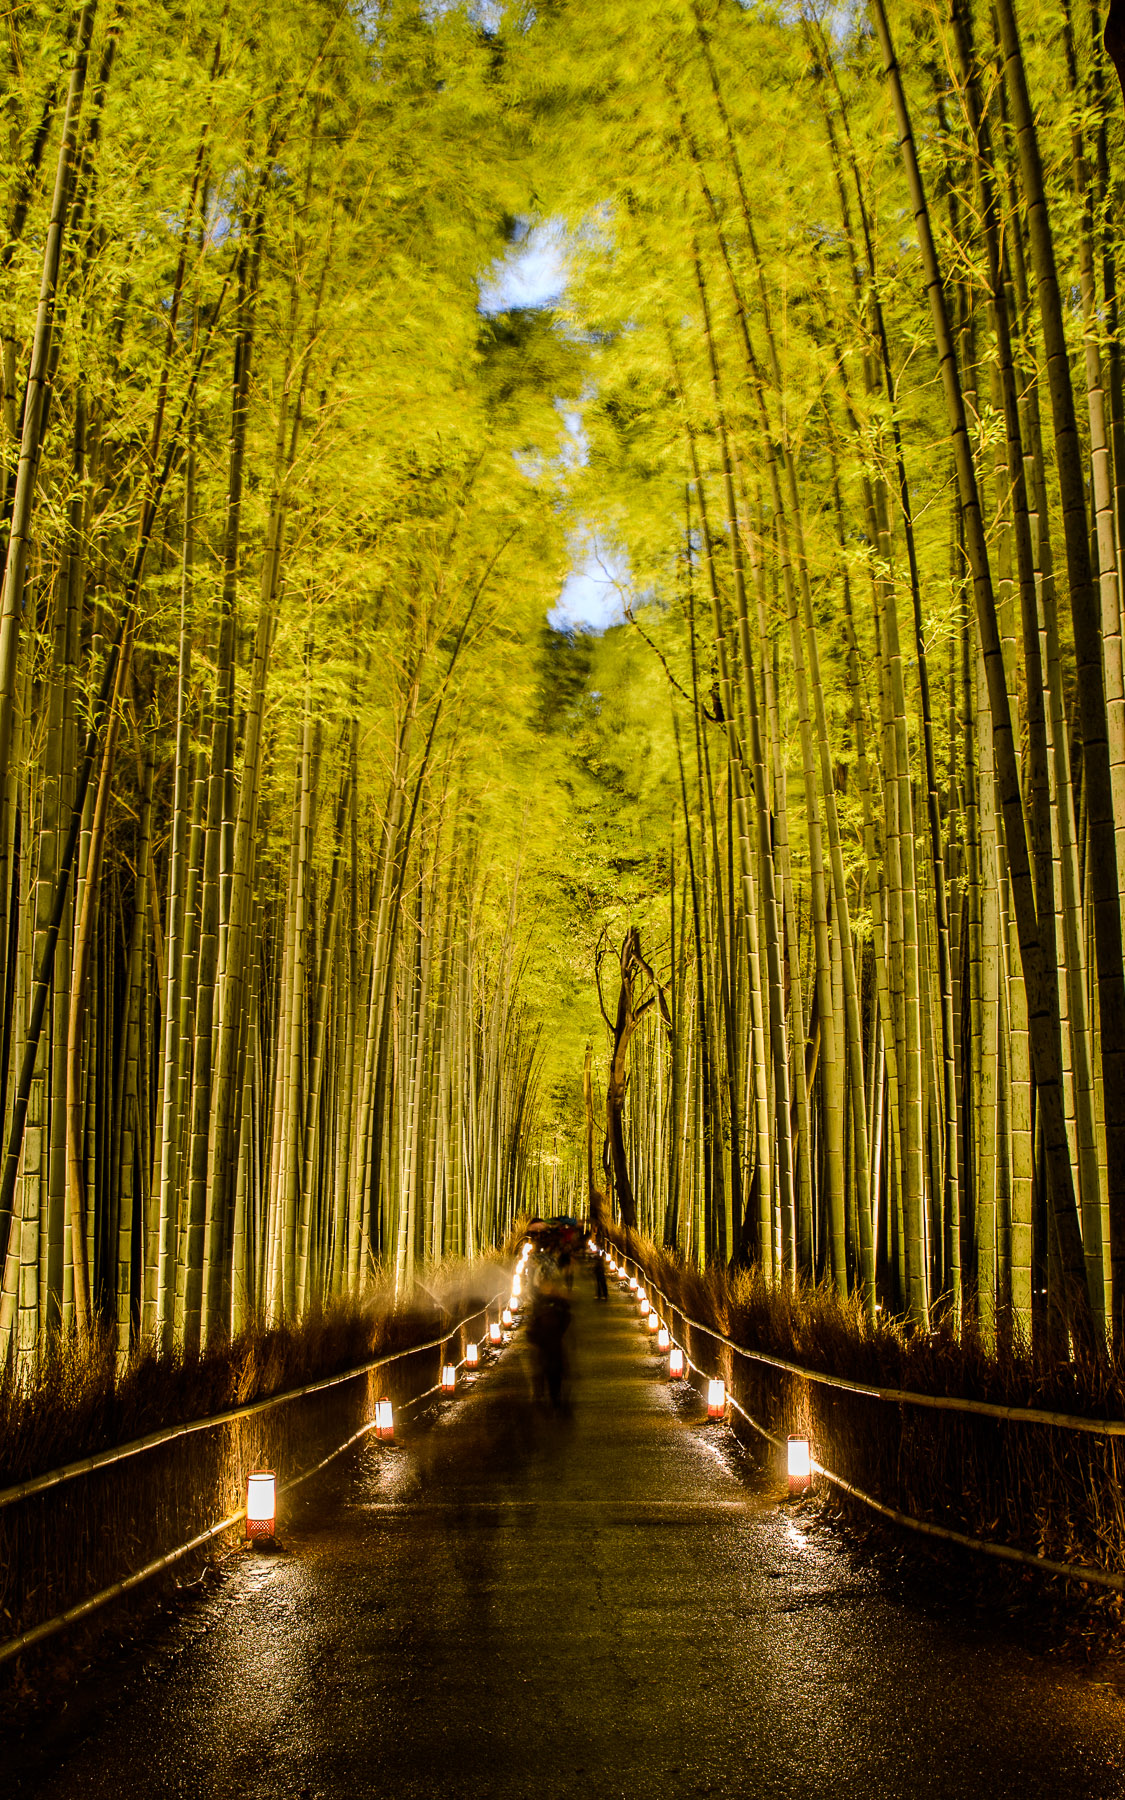 Jeffrey Friedls Blog » Kyoto Arashiyama Bamboo Forest Lightup